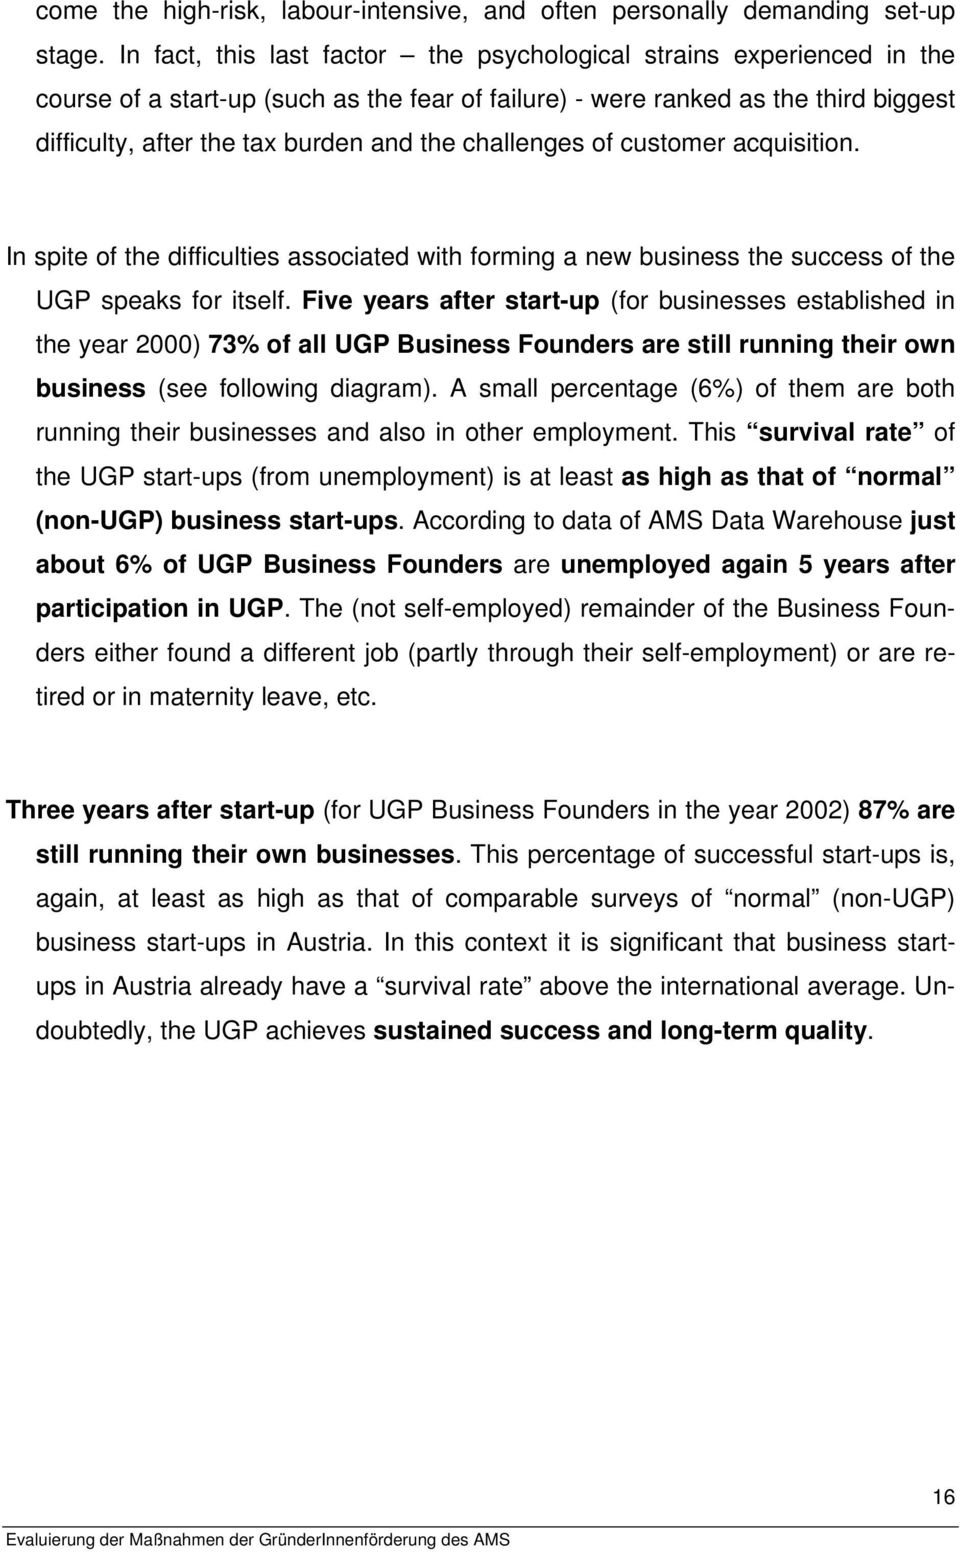 challenges of customer acquisition. In spite of the difficulties associated with forming a new business the success of the UGP speaks for itself.